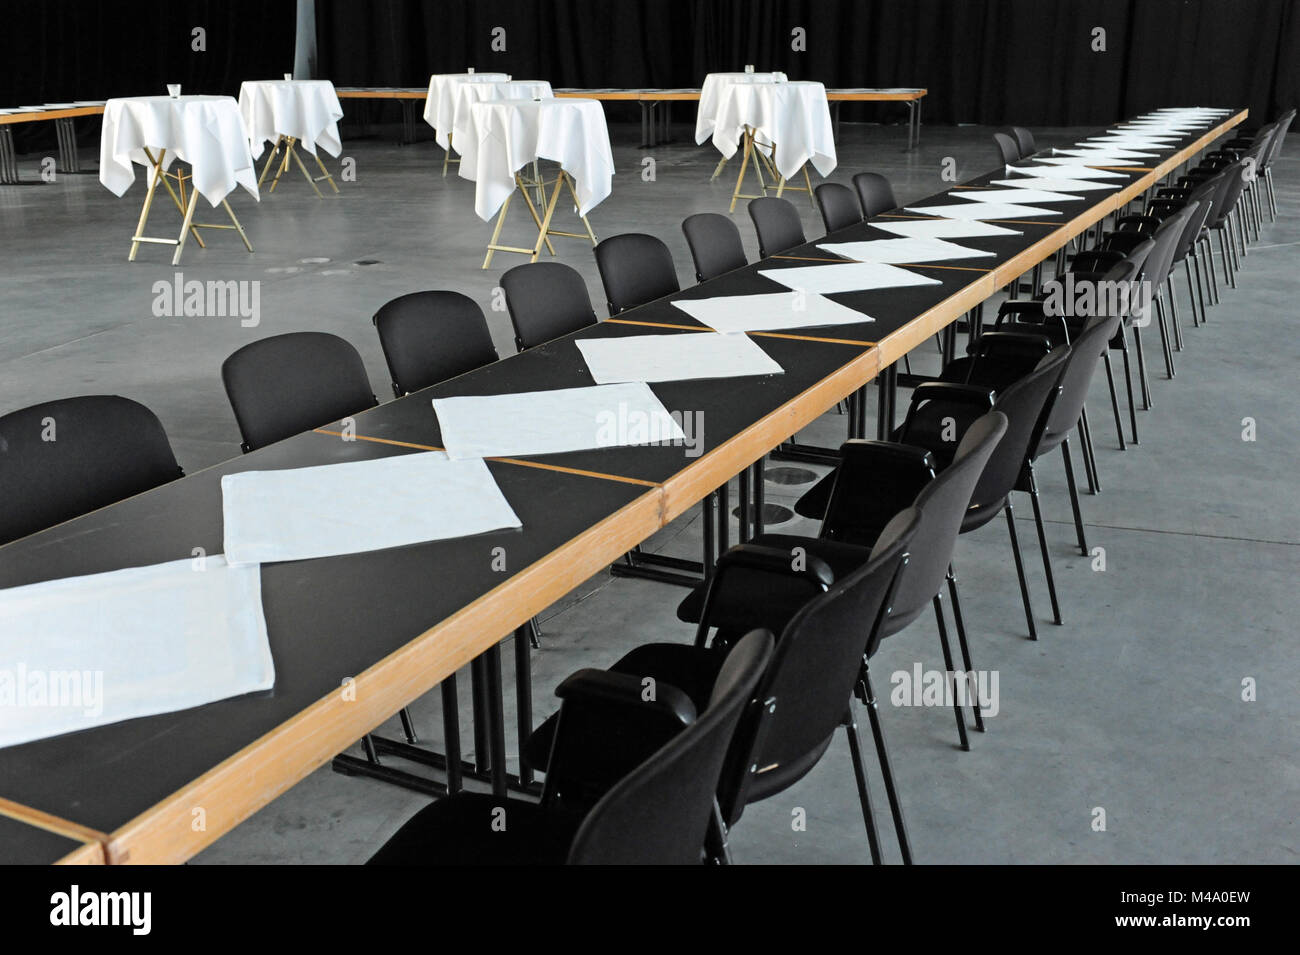 round tables with white tablecloths in a room - Stock Image